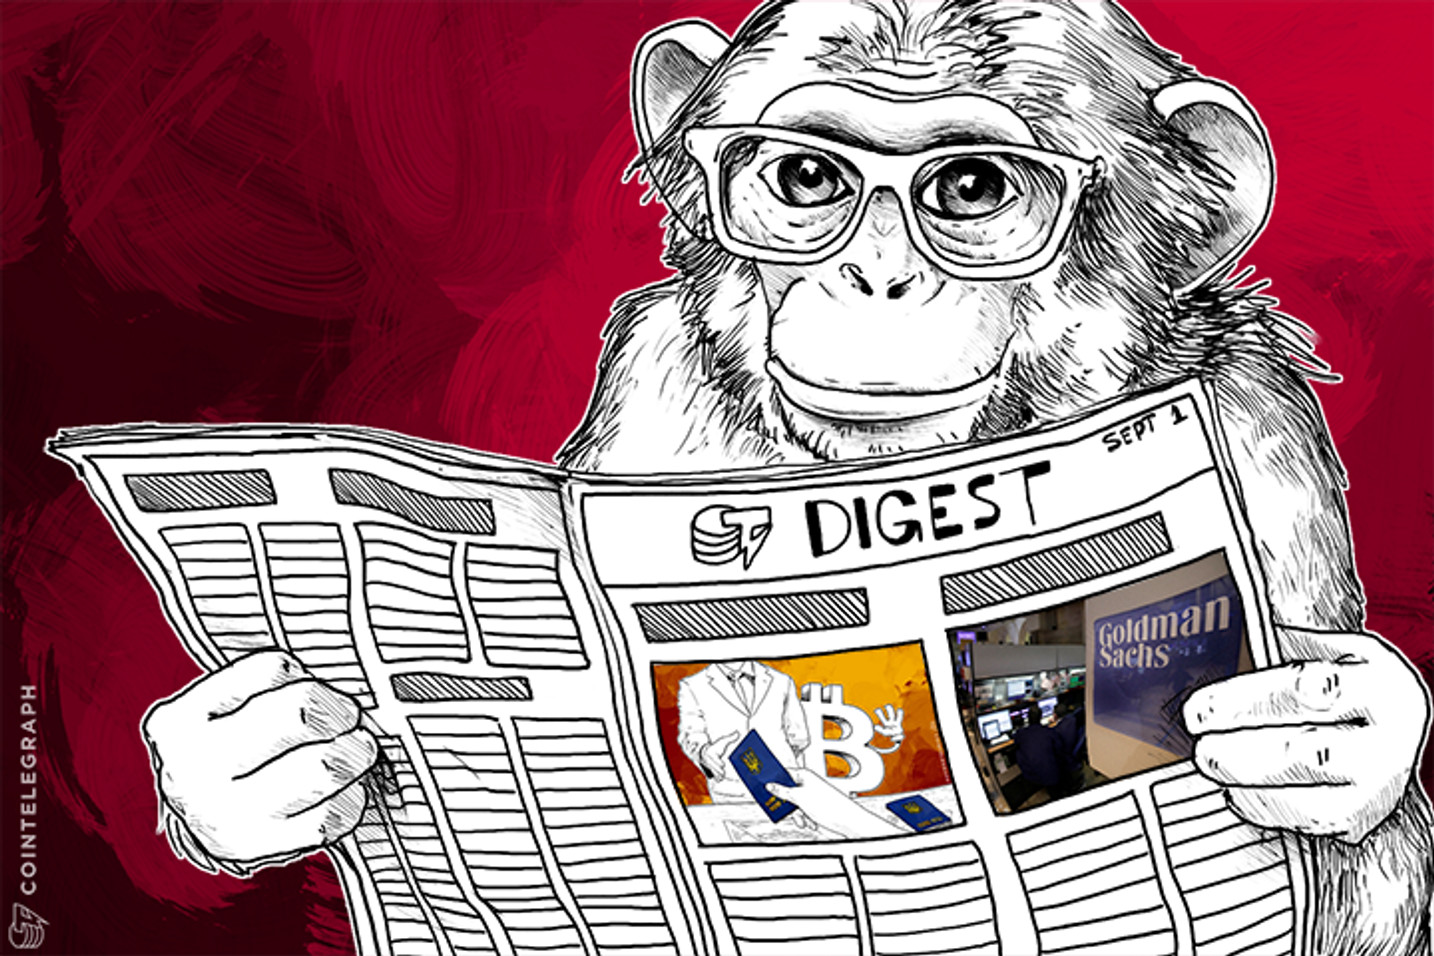 SEP 1 DIGEST: Silk Road Investigator Pleads Guilty to Bitcoin Theft; Goldman Sachs Analyst Says Blockchain Will Change Asset Ownership